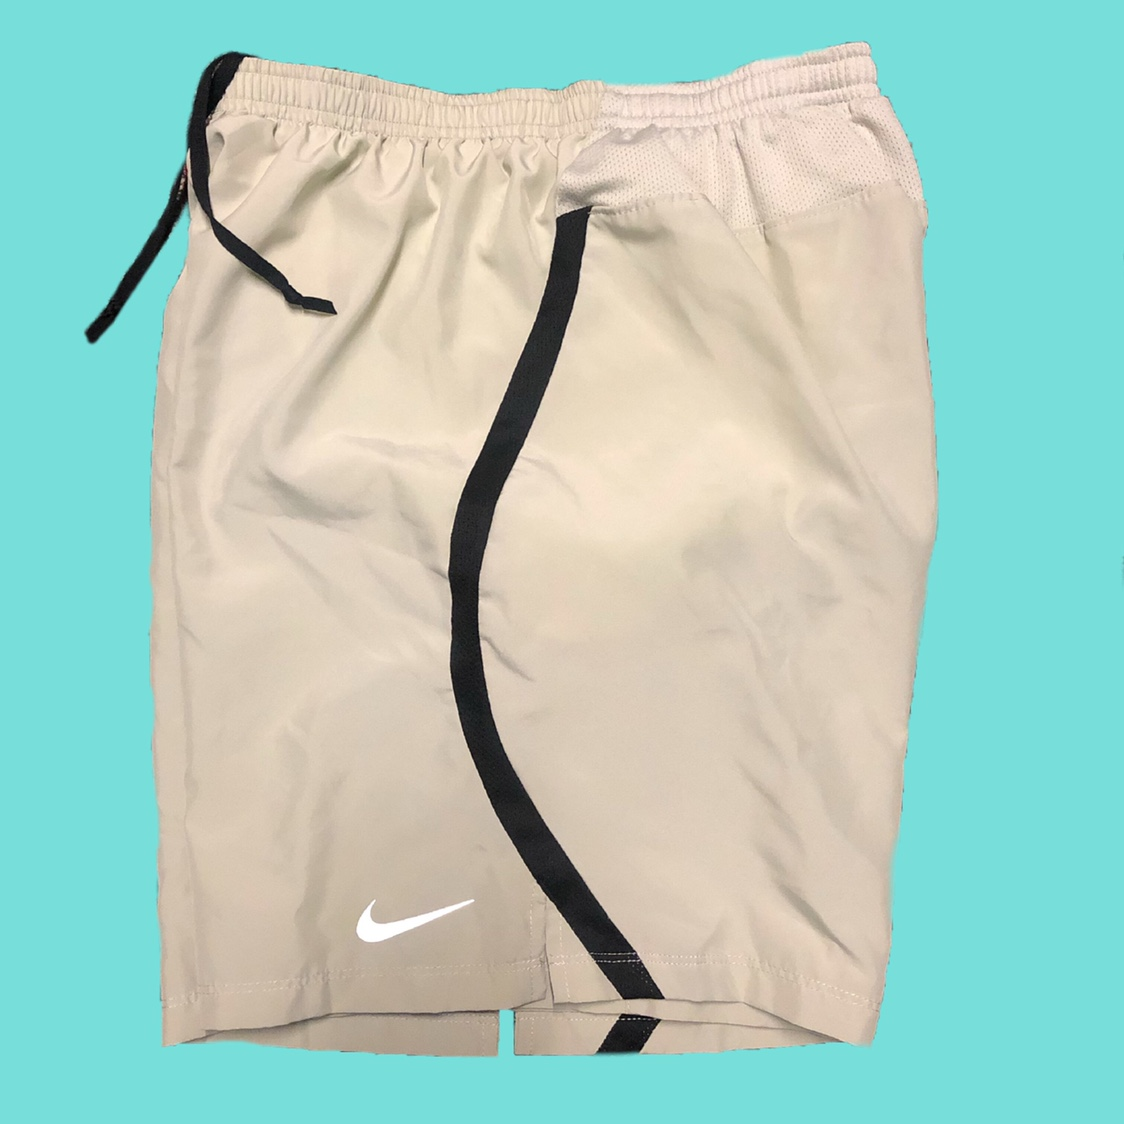 nike shorts without pockets